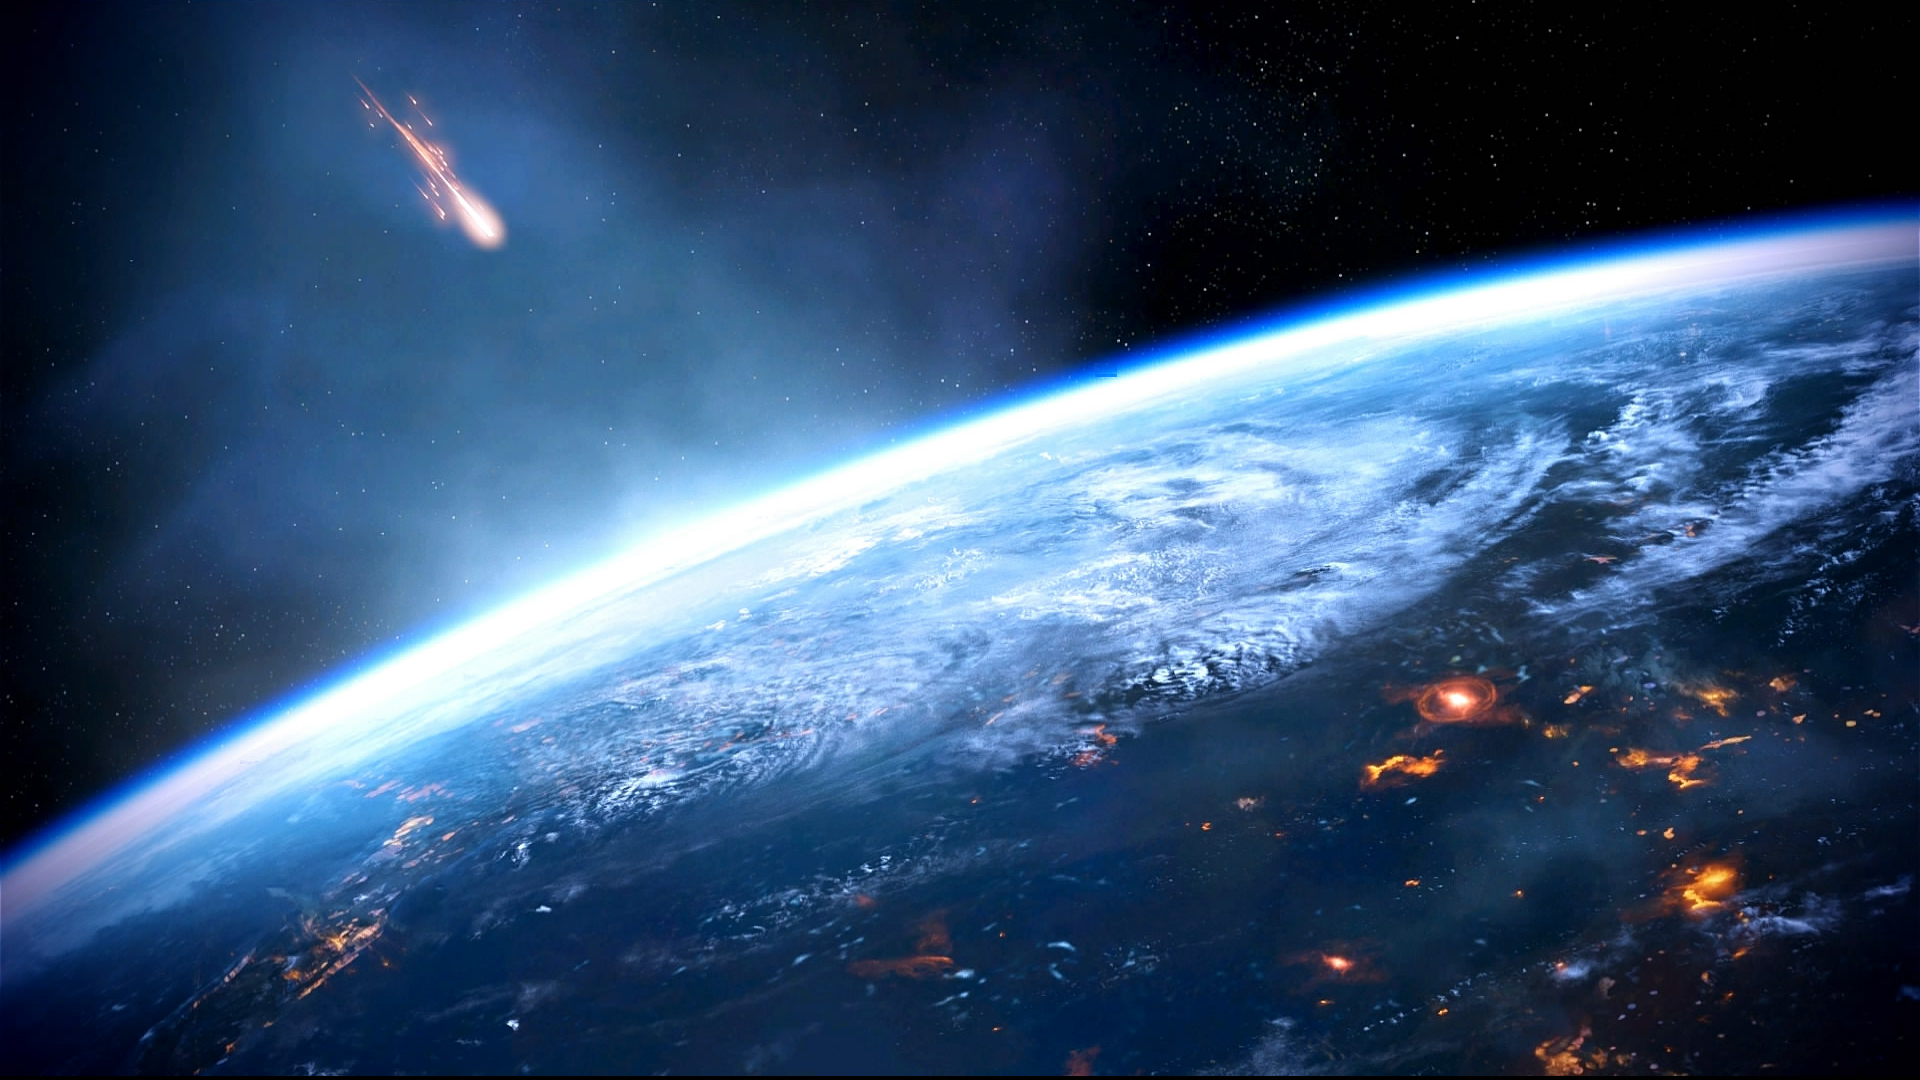 ... Mass Effect 3 Earth Dreamscene by droot1986